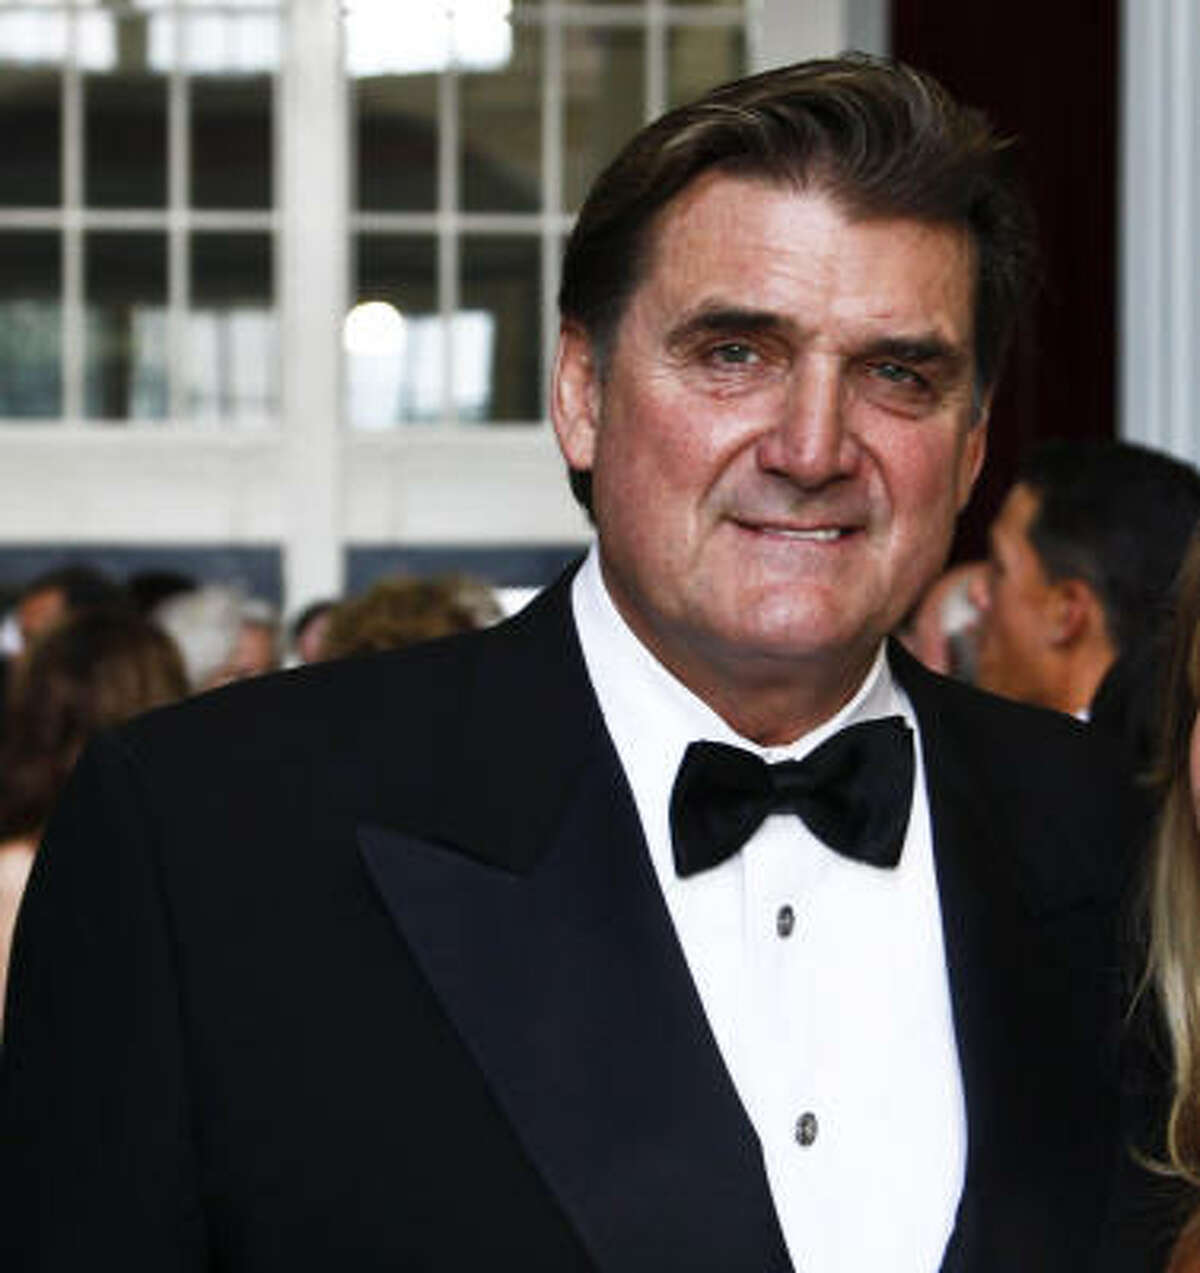 Dan Pastorini appears at Minute Maid Park at a charity event last year. He was charged early Monday with drunken driving and with not having a driver's license.